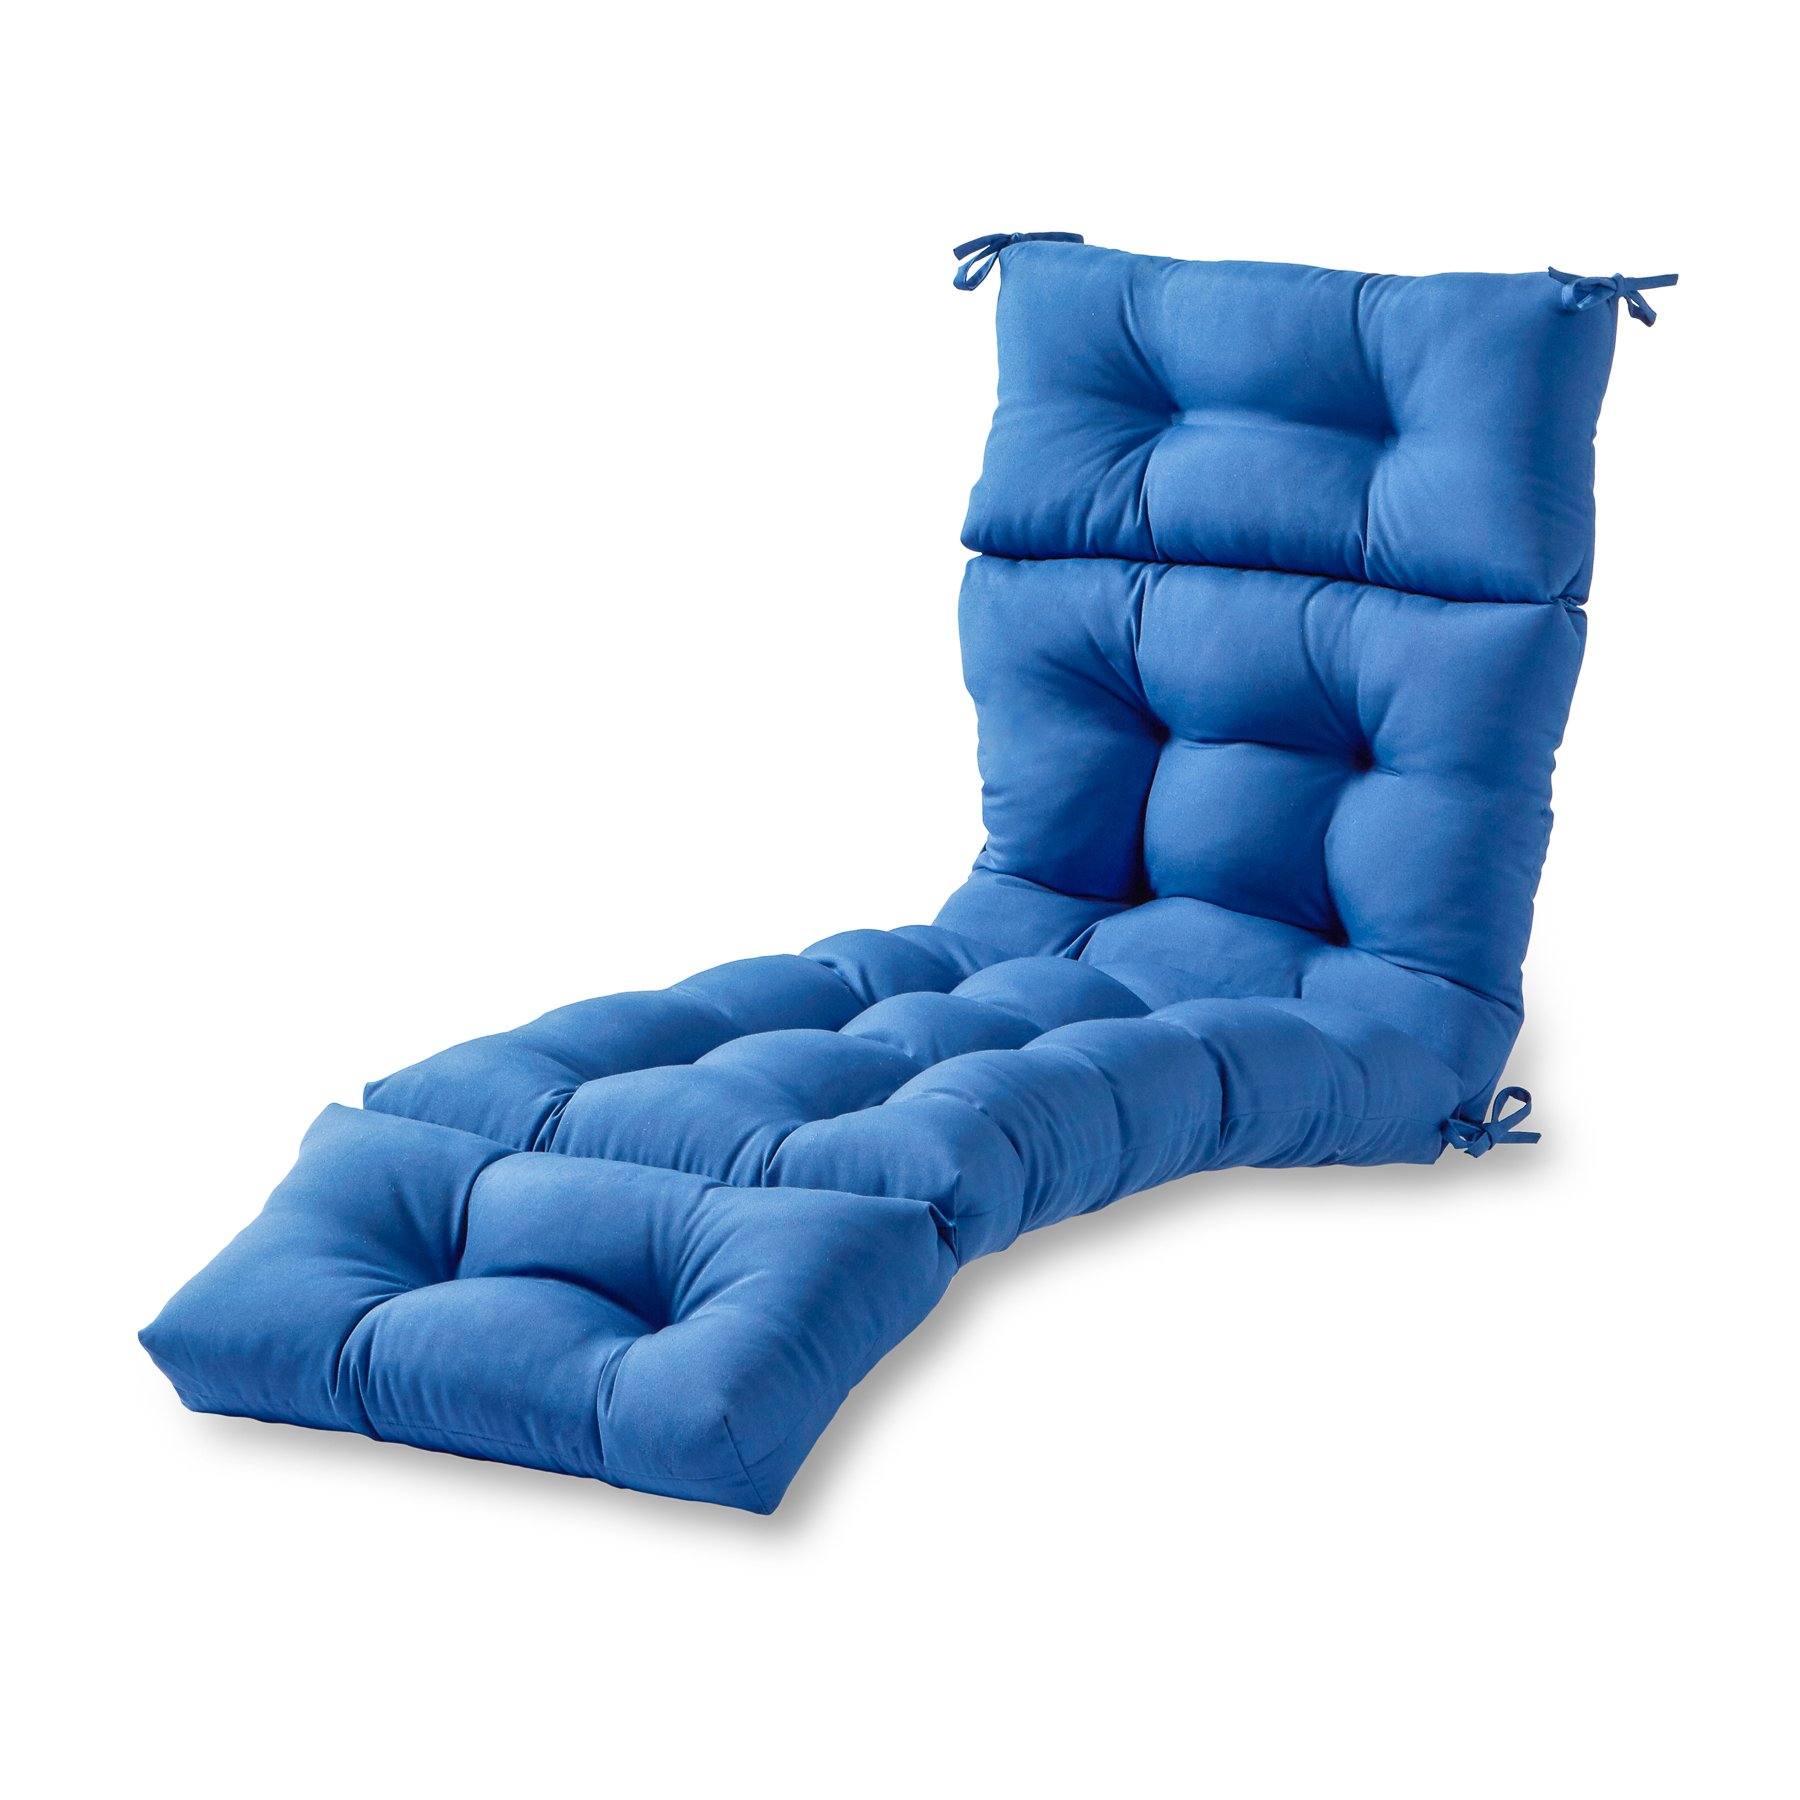 Greendale Home Fashions 72-Inch Indoor/Outdoor Chaise Lounger Cushion, Marine Blue by Greendale Home Fashions